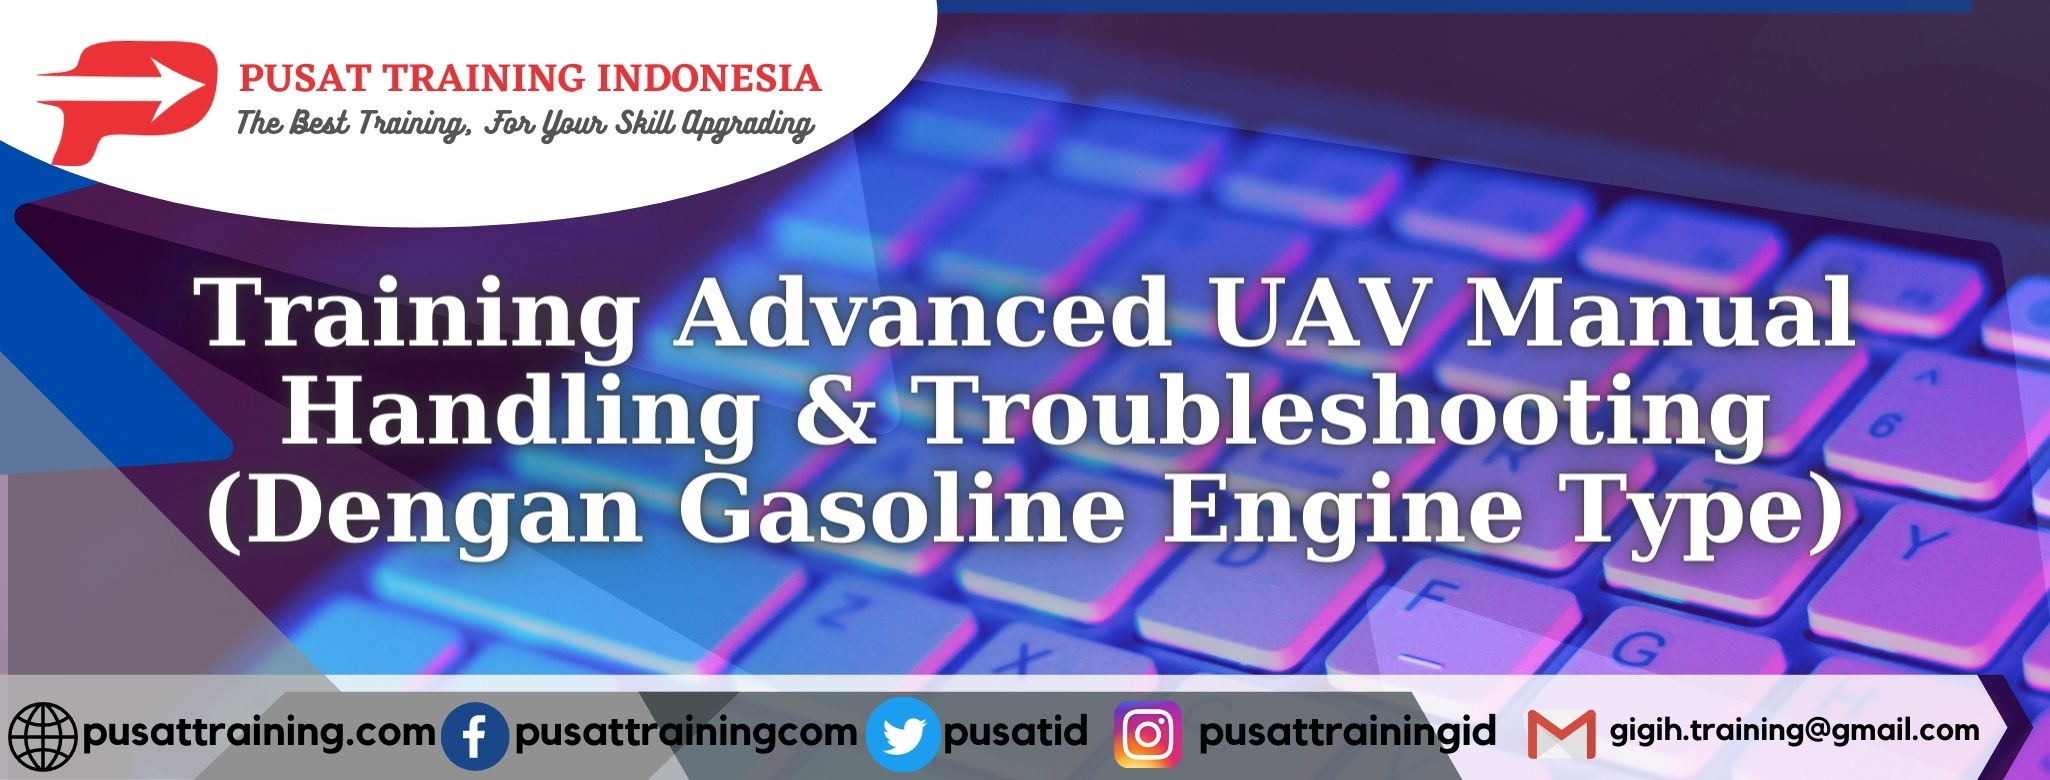 Training-Advanced-UAV-Manual-Handling-Troubleshooting-Dengan-Gasoline-Engine-Type